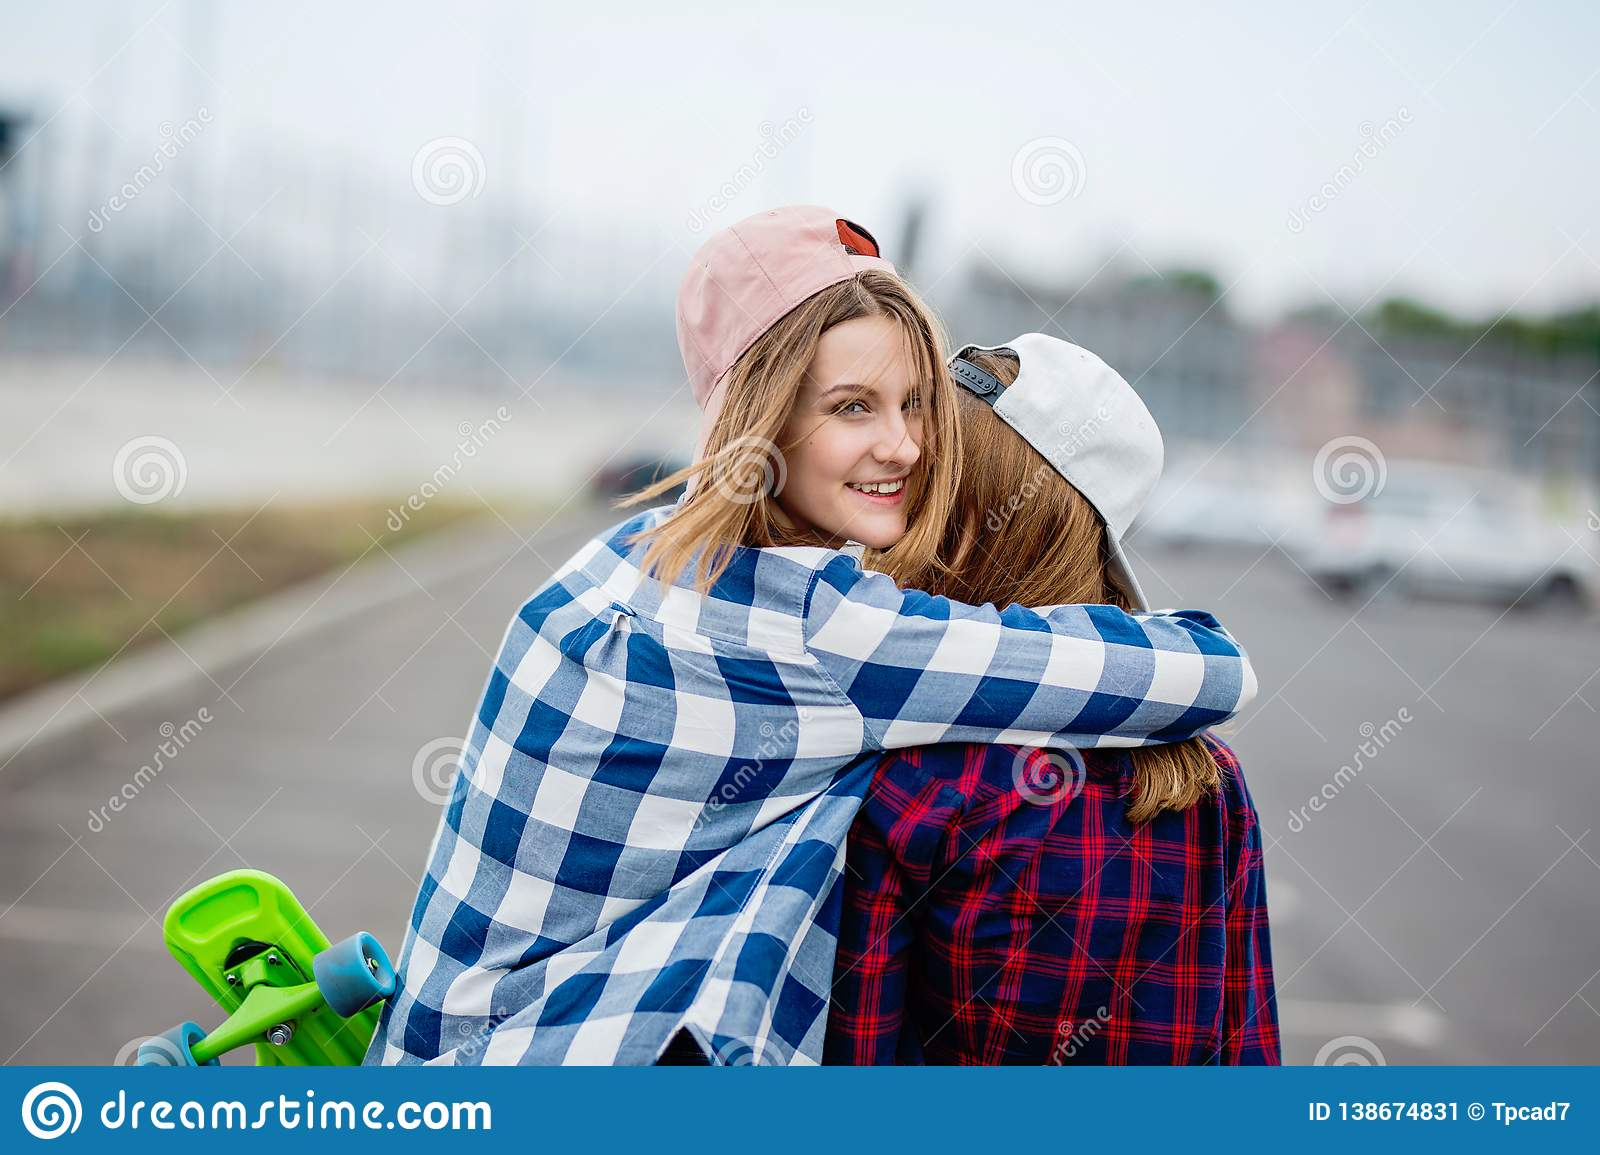 Two pretty smiling blond girls wearing checkered shirts, caps and denim shorts are standing and hugging on the empty car